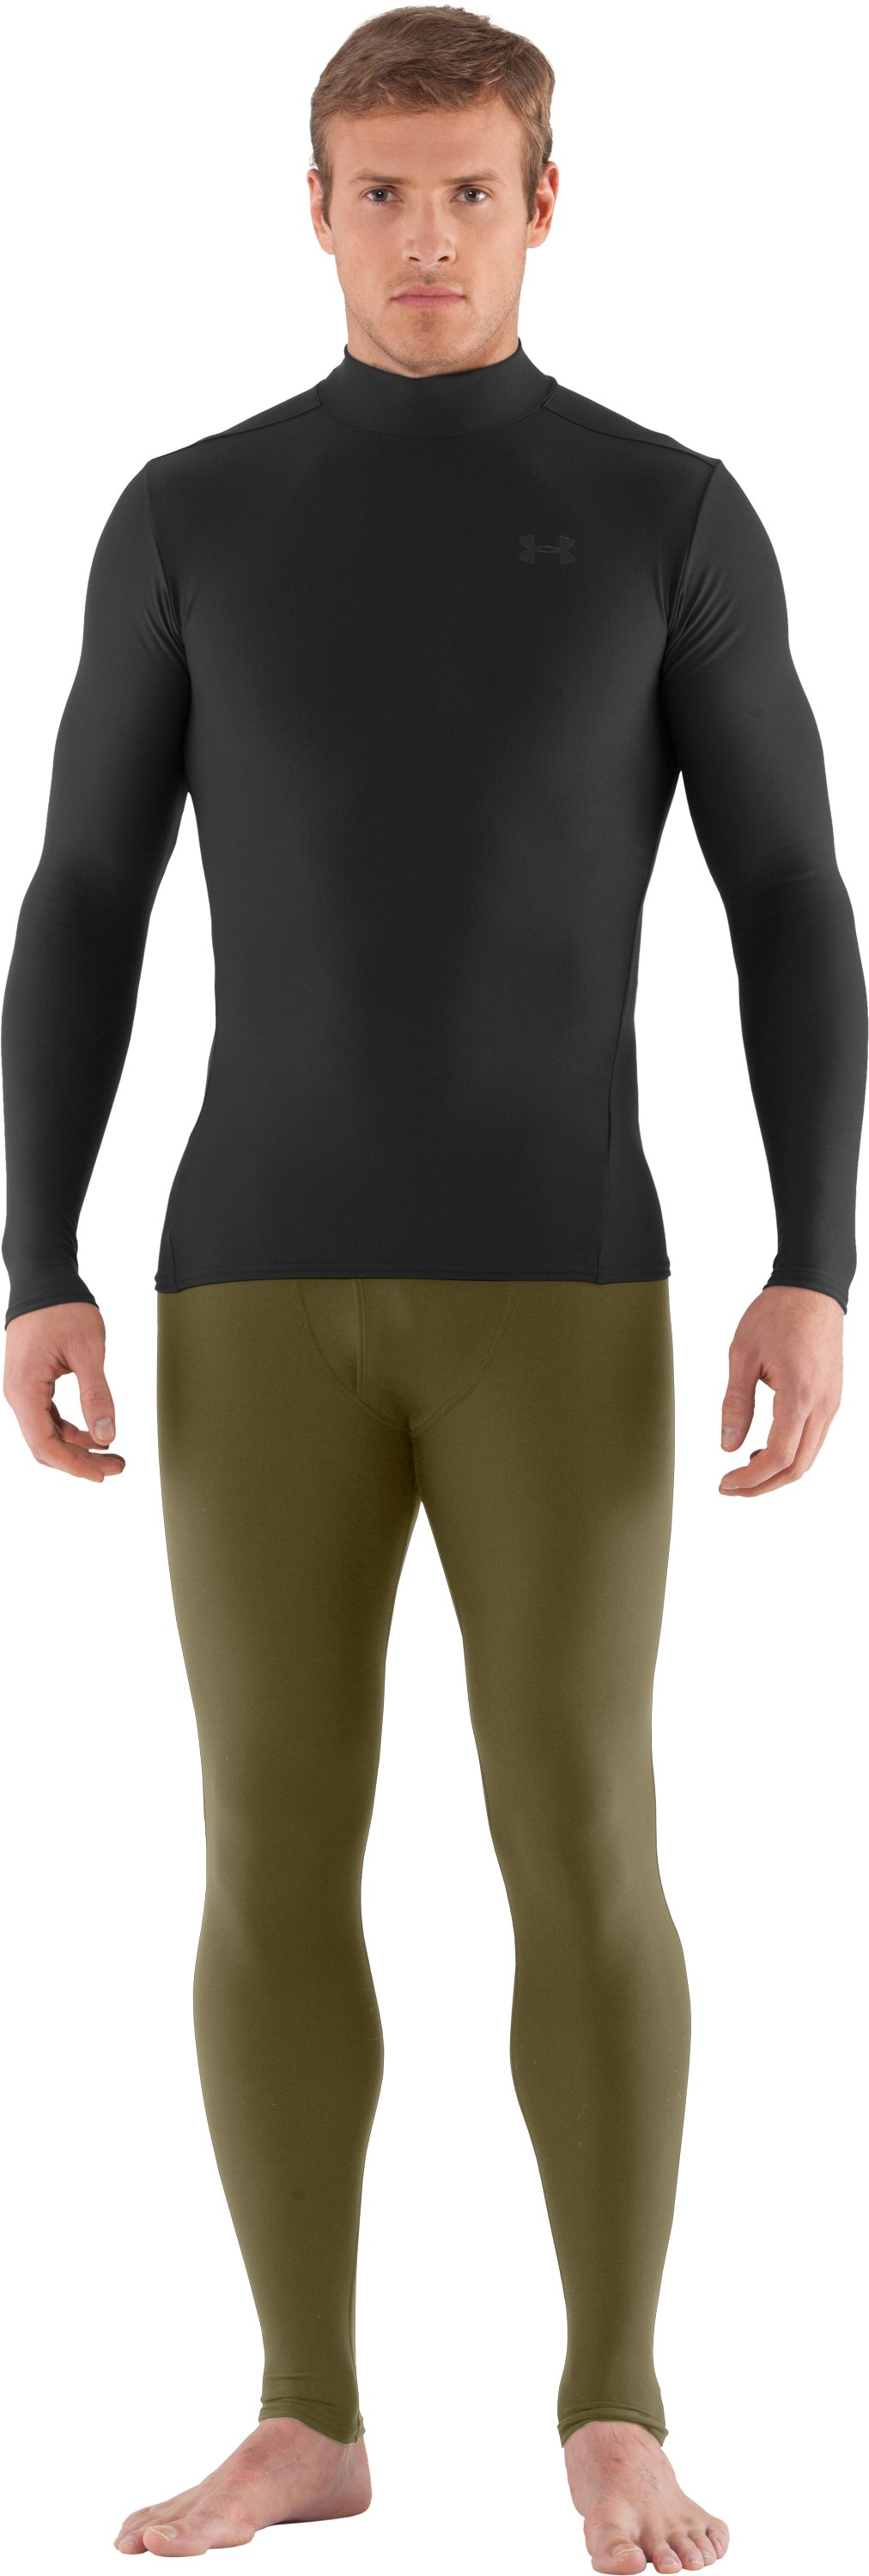 Men's Tactical ColdGear® Compression Leggings, Marine OD Green, Front